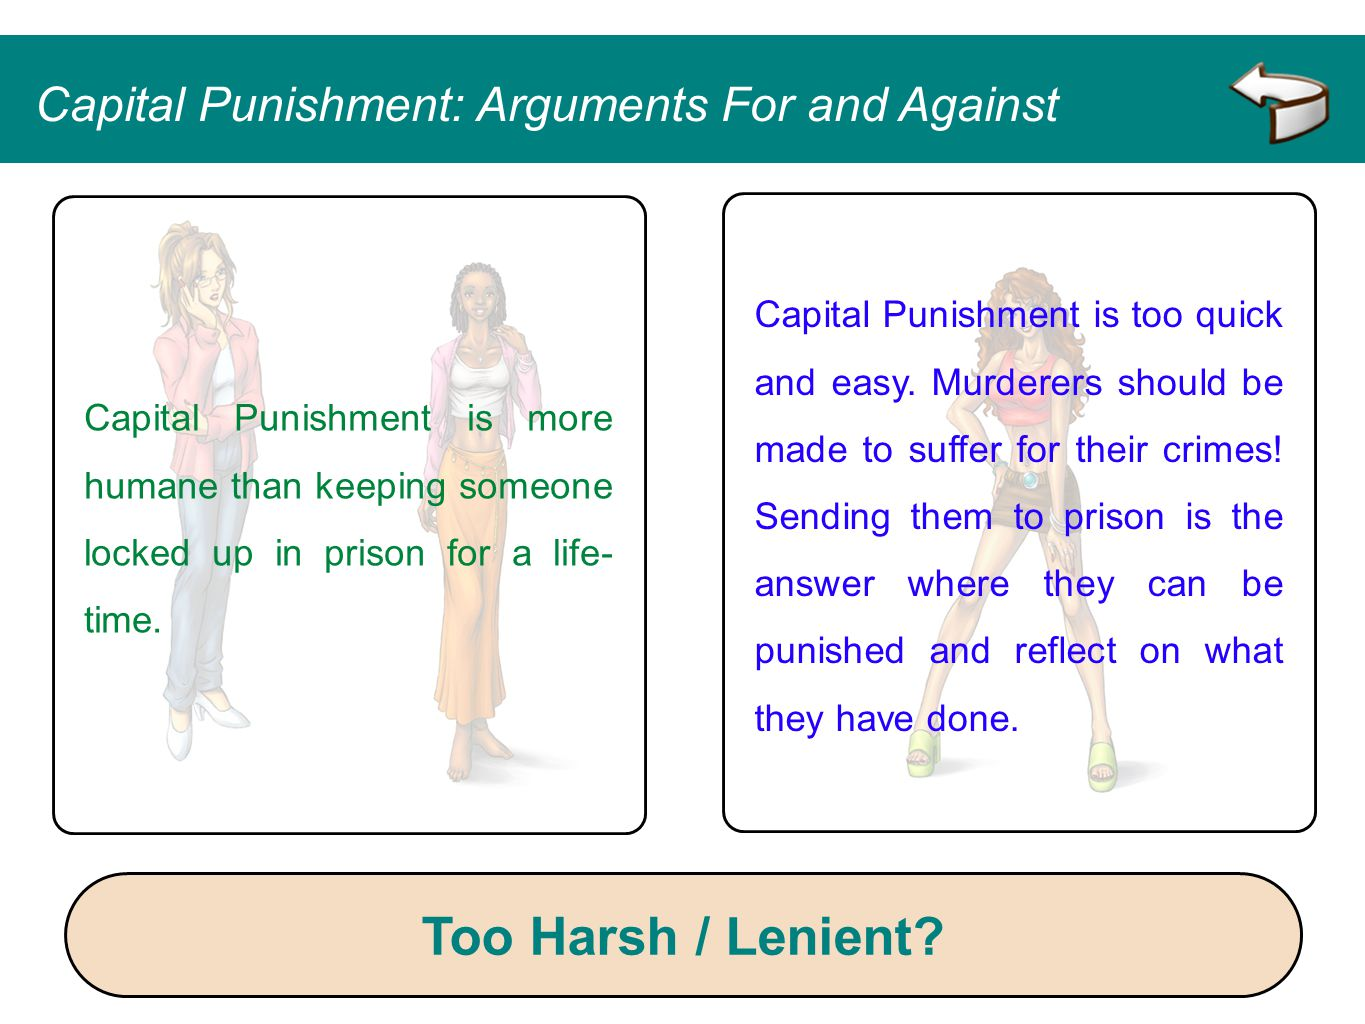 Capital Punishment is more humane than keeping someone locked up in prison for a life- time. Capital Punishment is too quick and easy. Murderers shoul